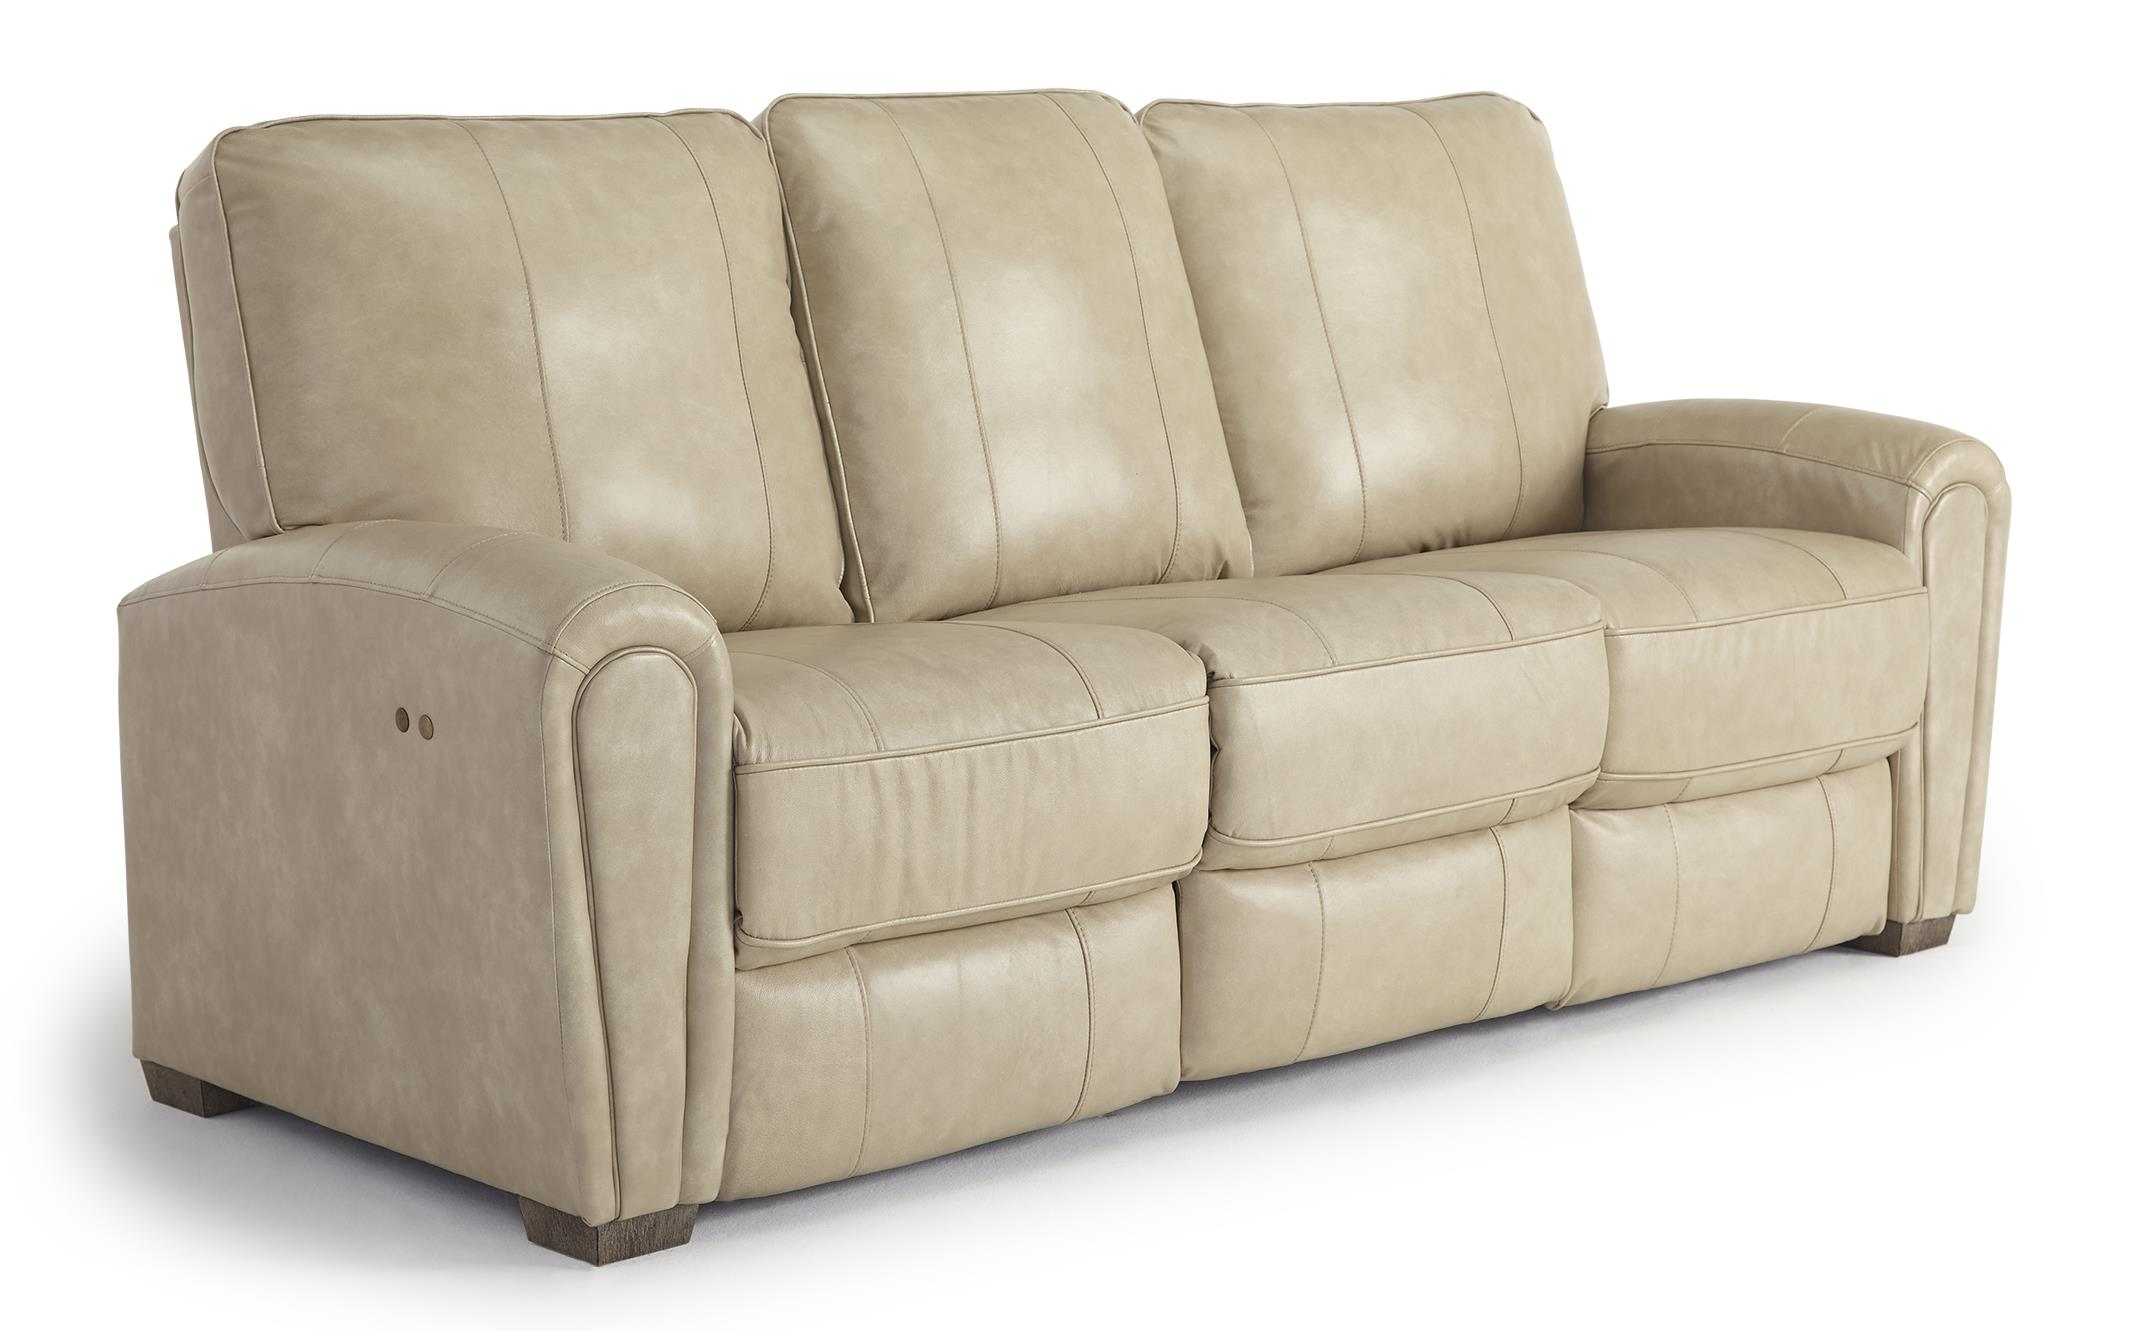 Best Home Furnishings Miriam Power Motion Sofa - Item Number: S907CP2-73217LV